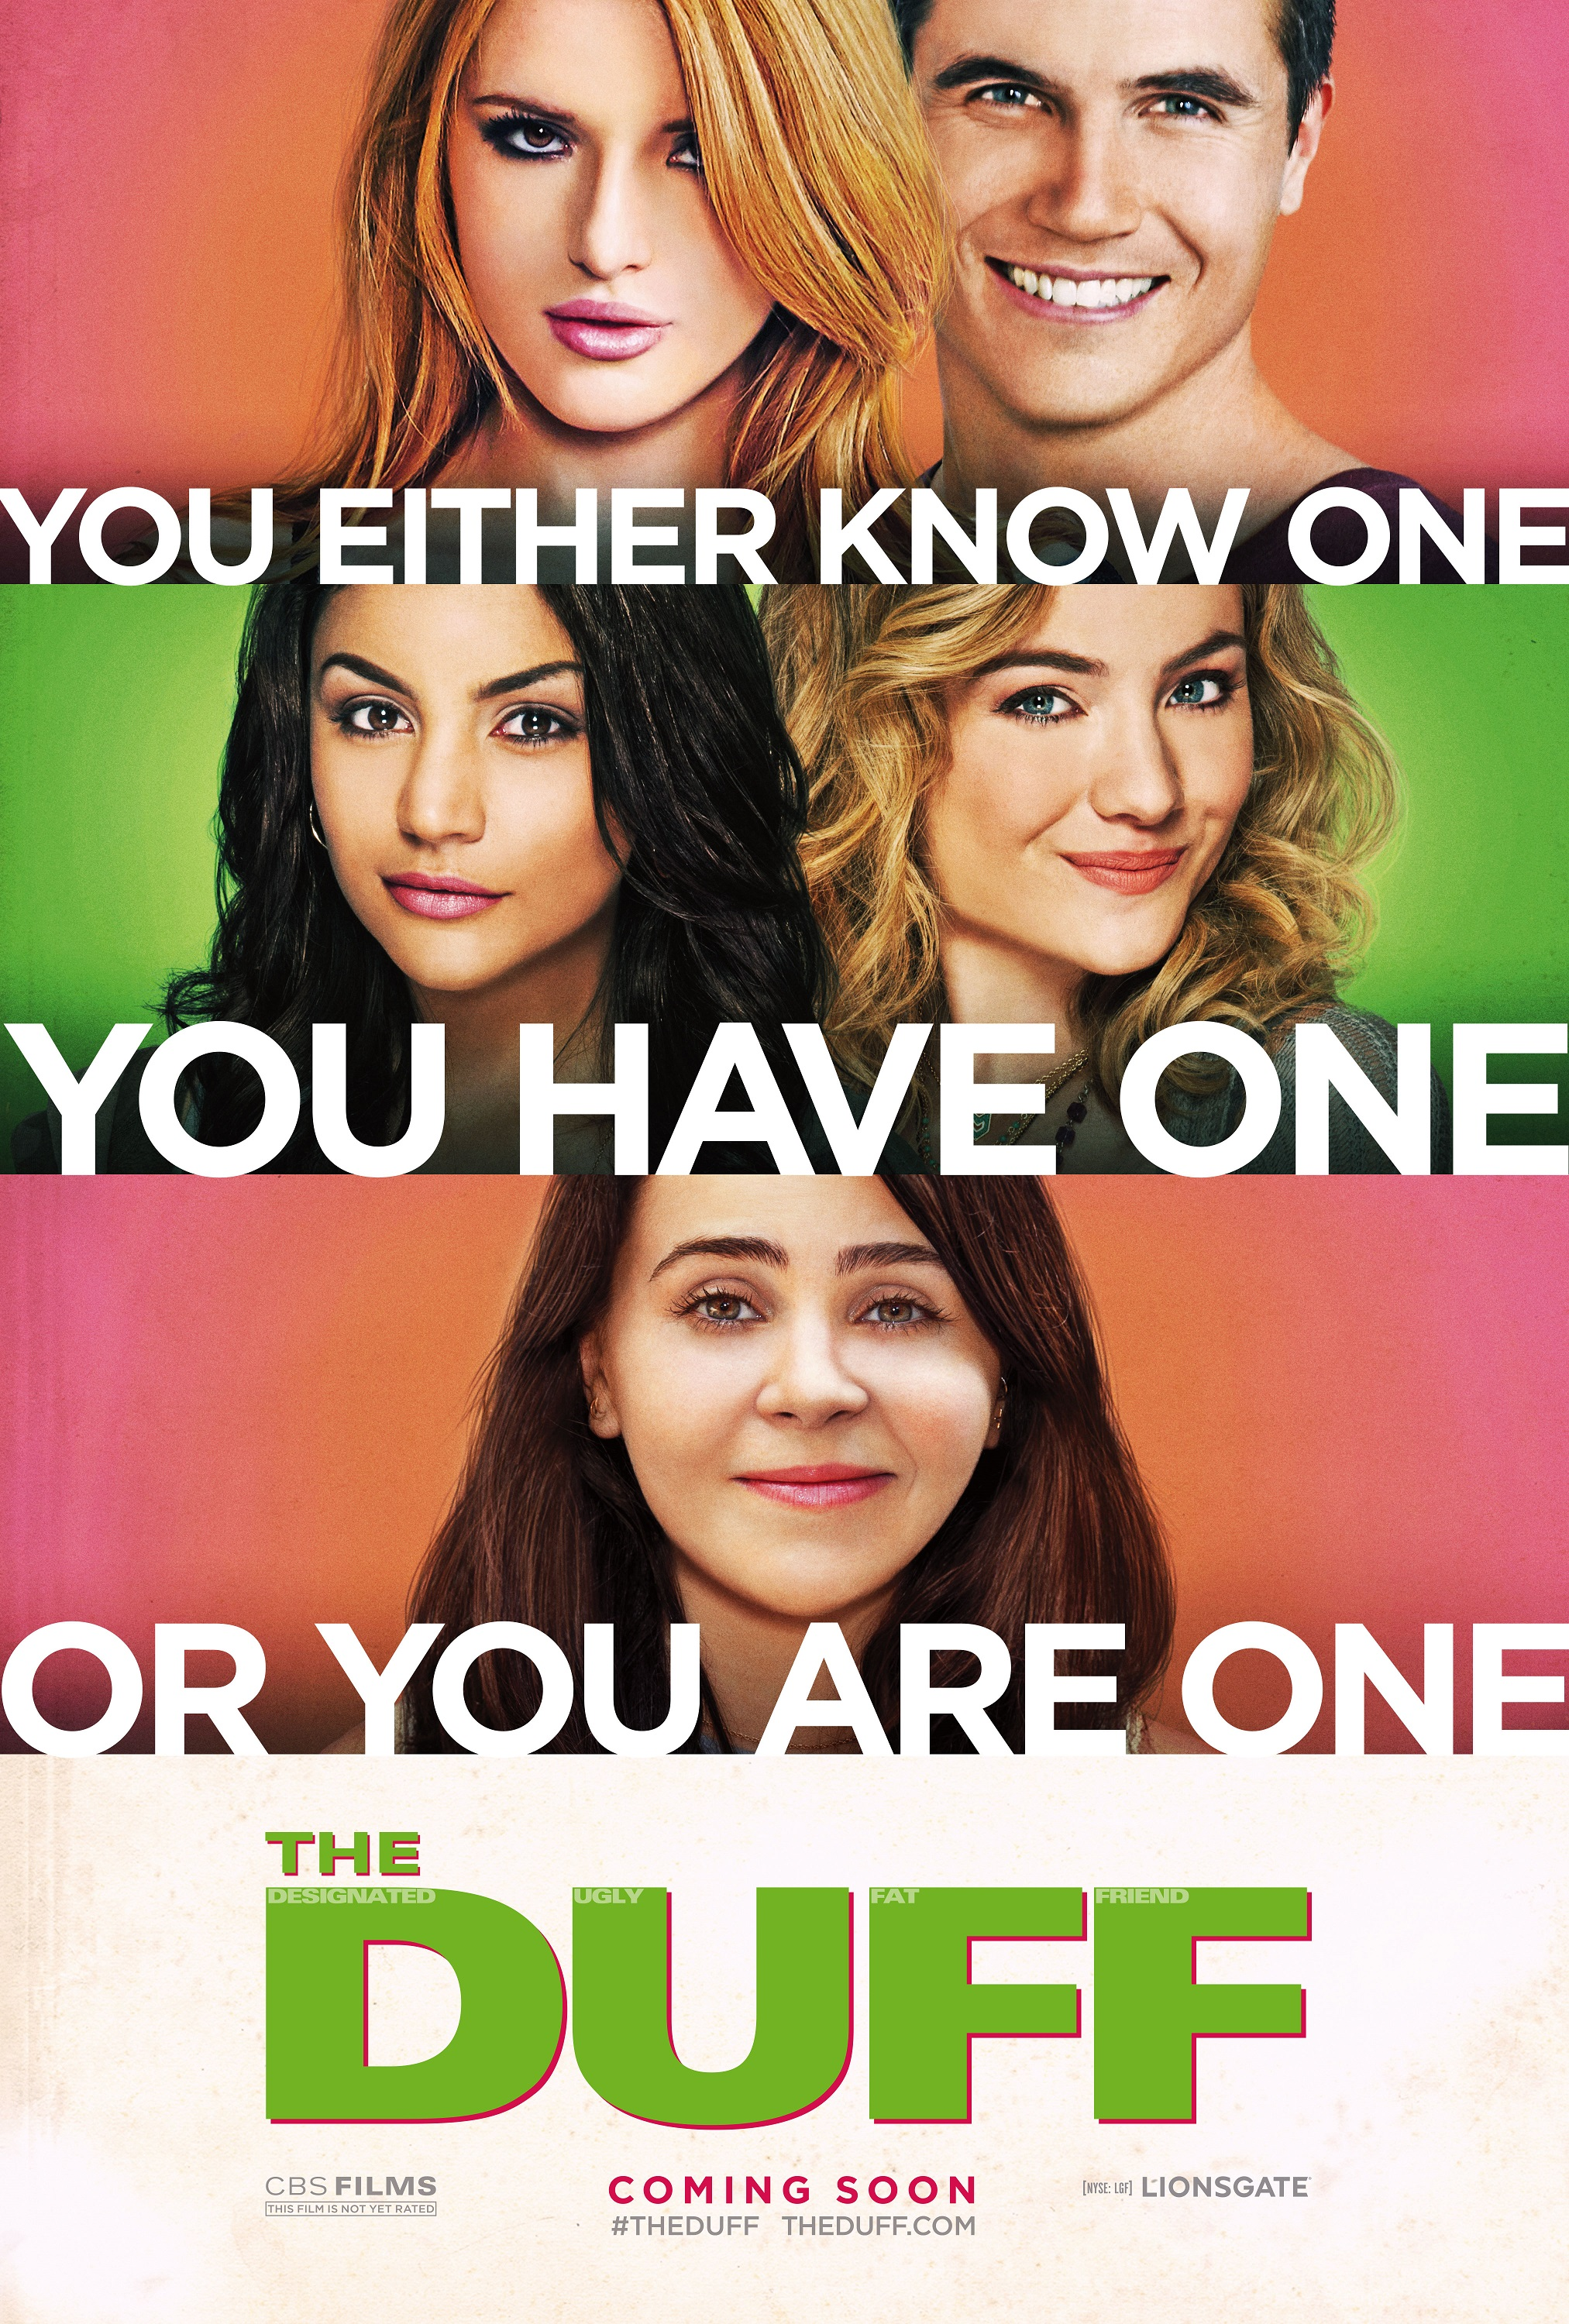 THE-DUFF-Official-Poster-PROMO-19NOVEMBRO2014-07